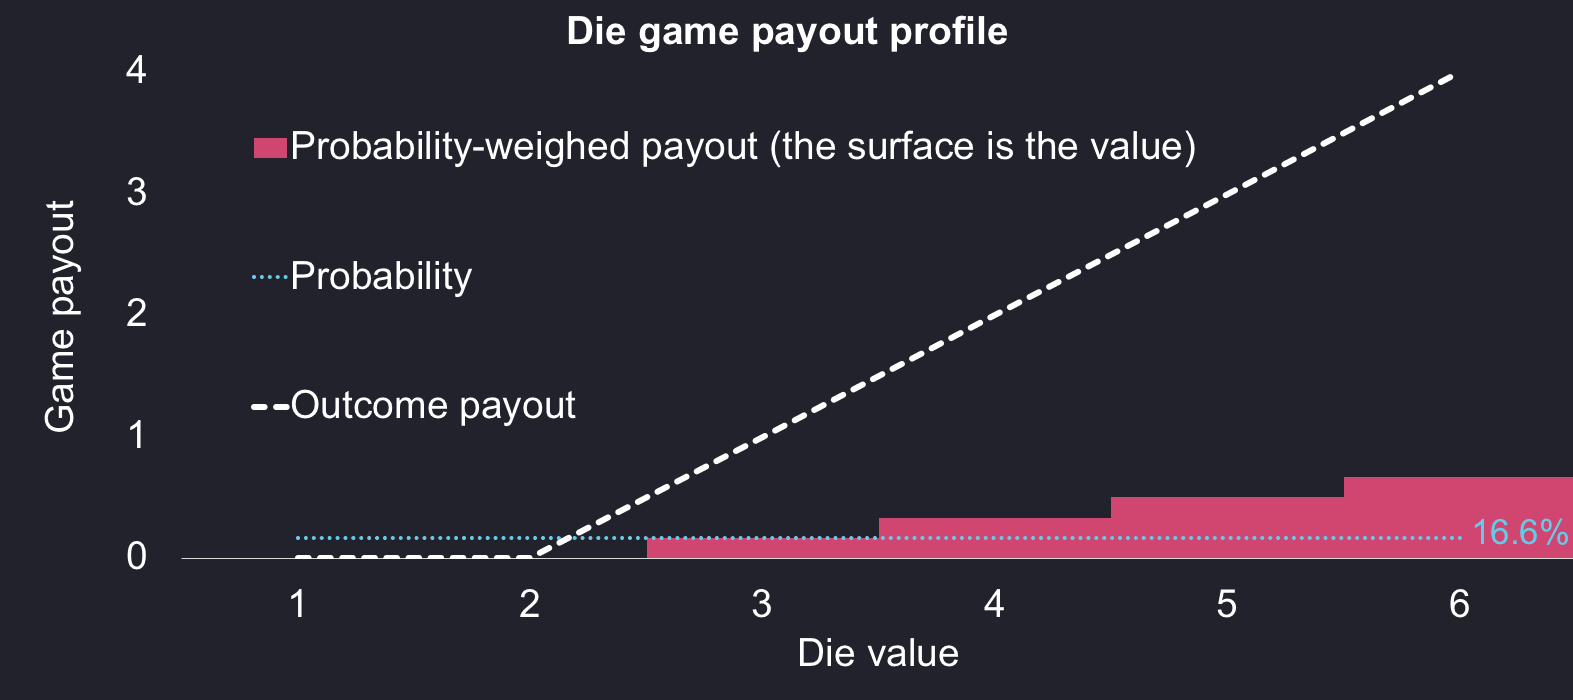 A chart showing the outcome profile of the dice game and the corresponding probabilities and probability-weighed expected payout values